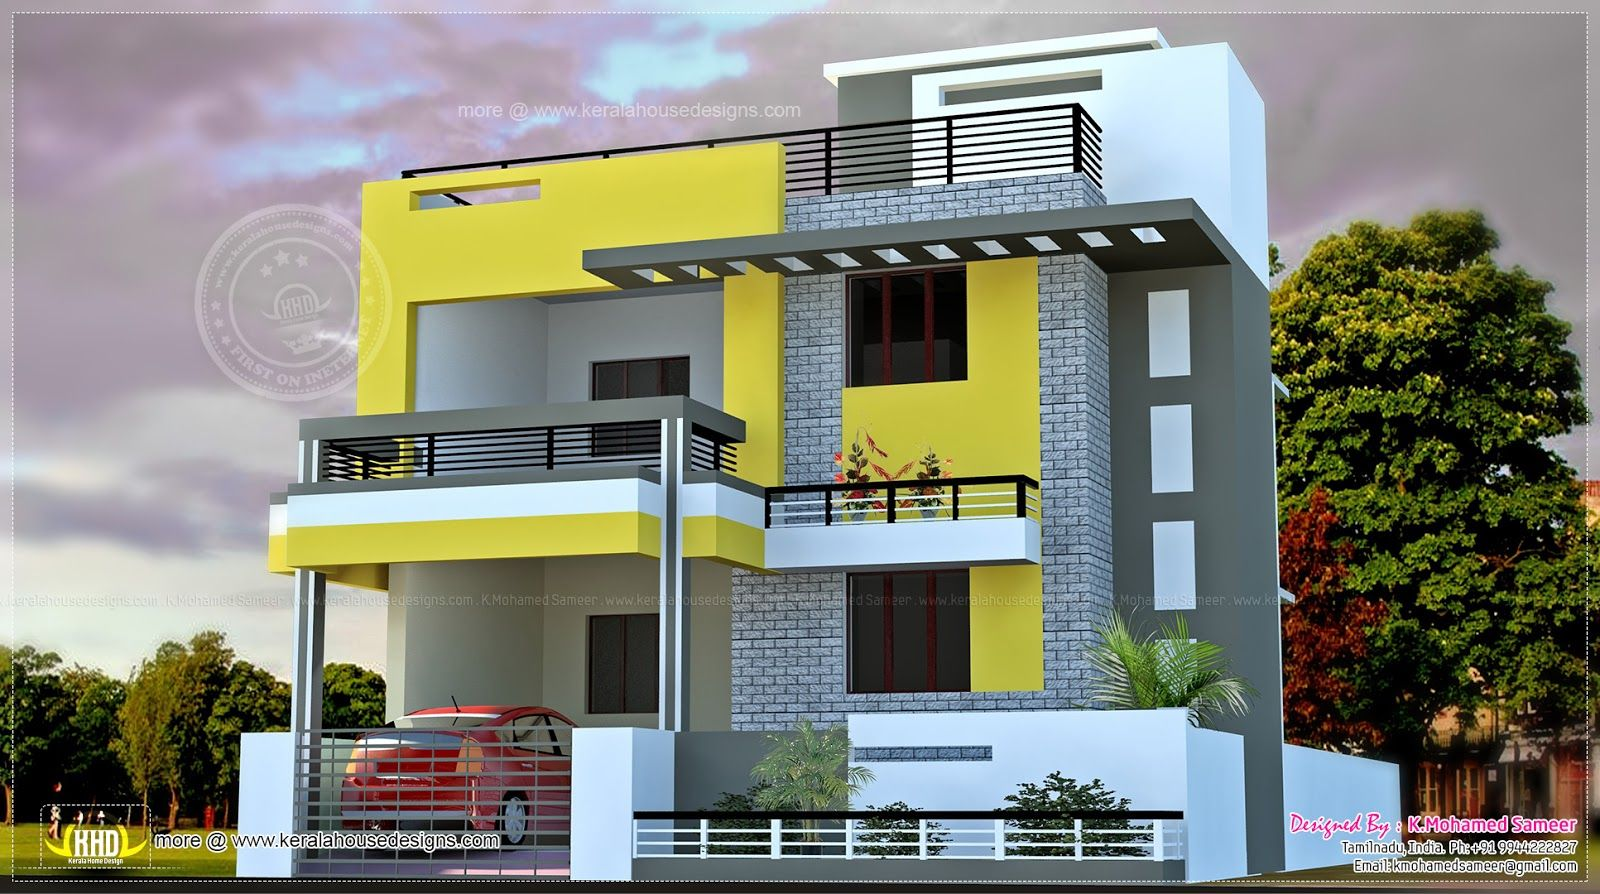 Modern style indian home modern house plans modern house design house front design